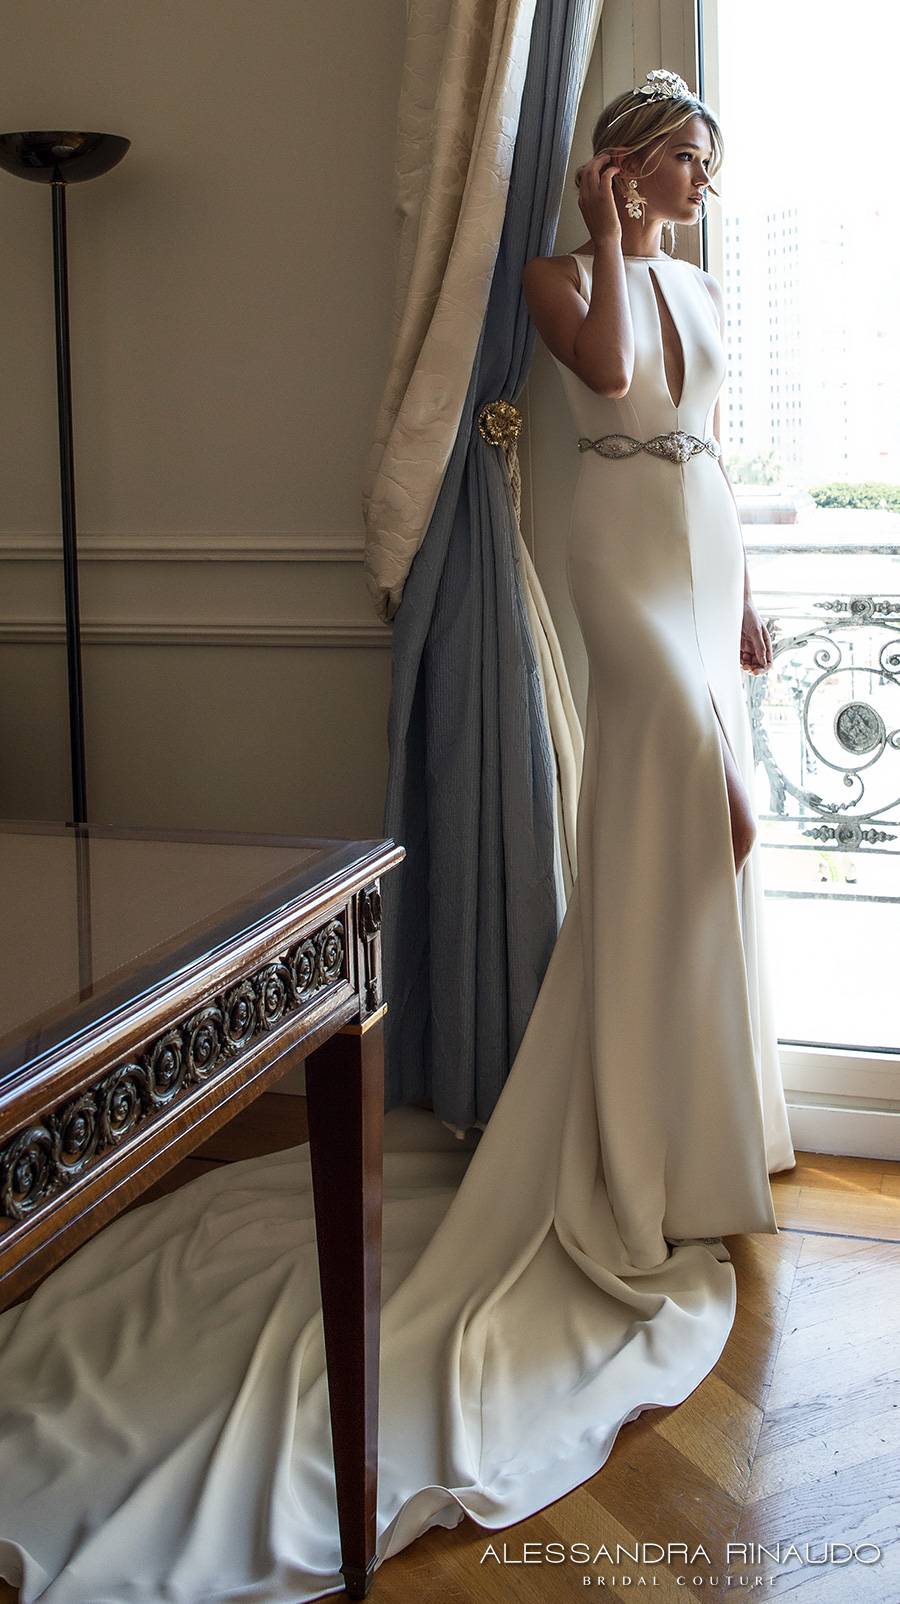 alessandra rinaudo 2017 bridal sleeveless boat neckline keyhole bodice clean simple elegant sheath wedding dress middle slit skirt low v back chapel train (bernadette) sdv mv